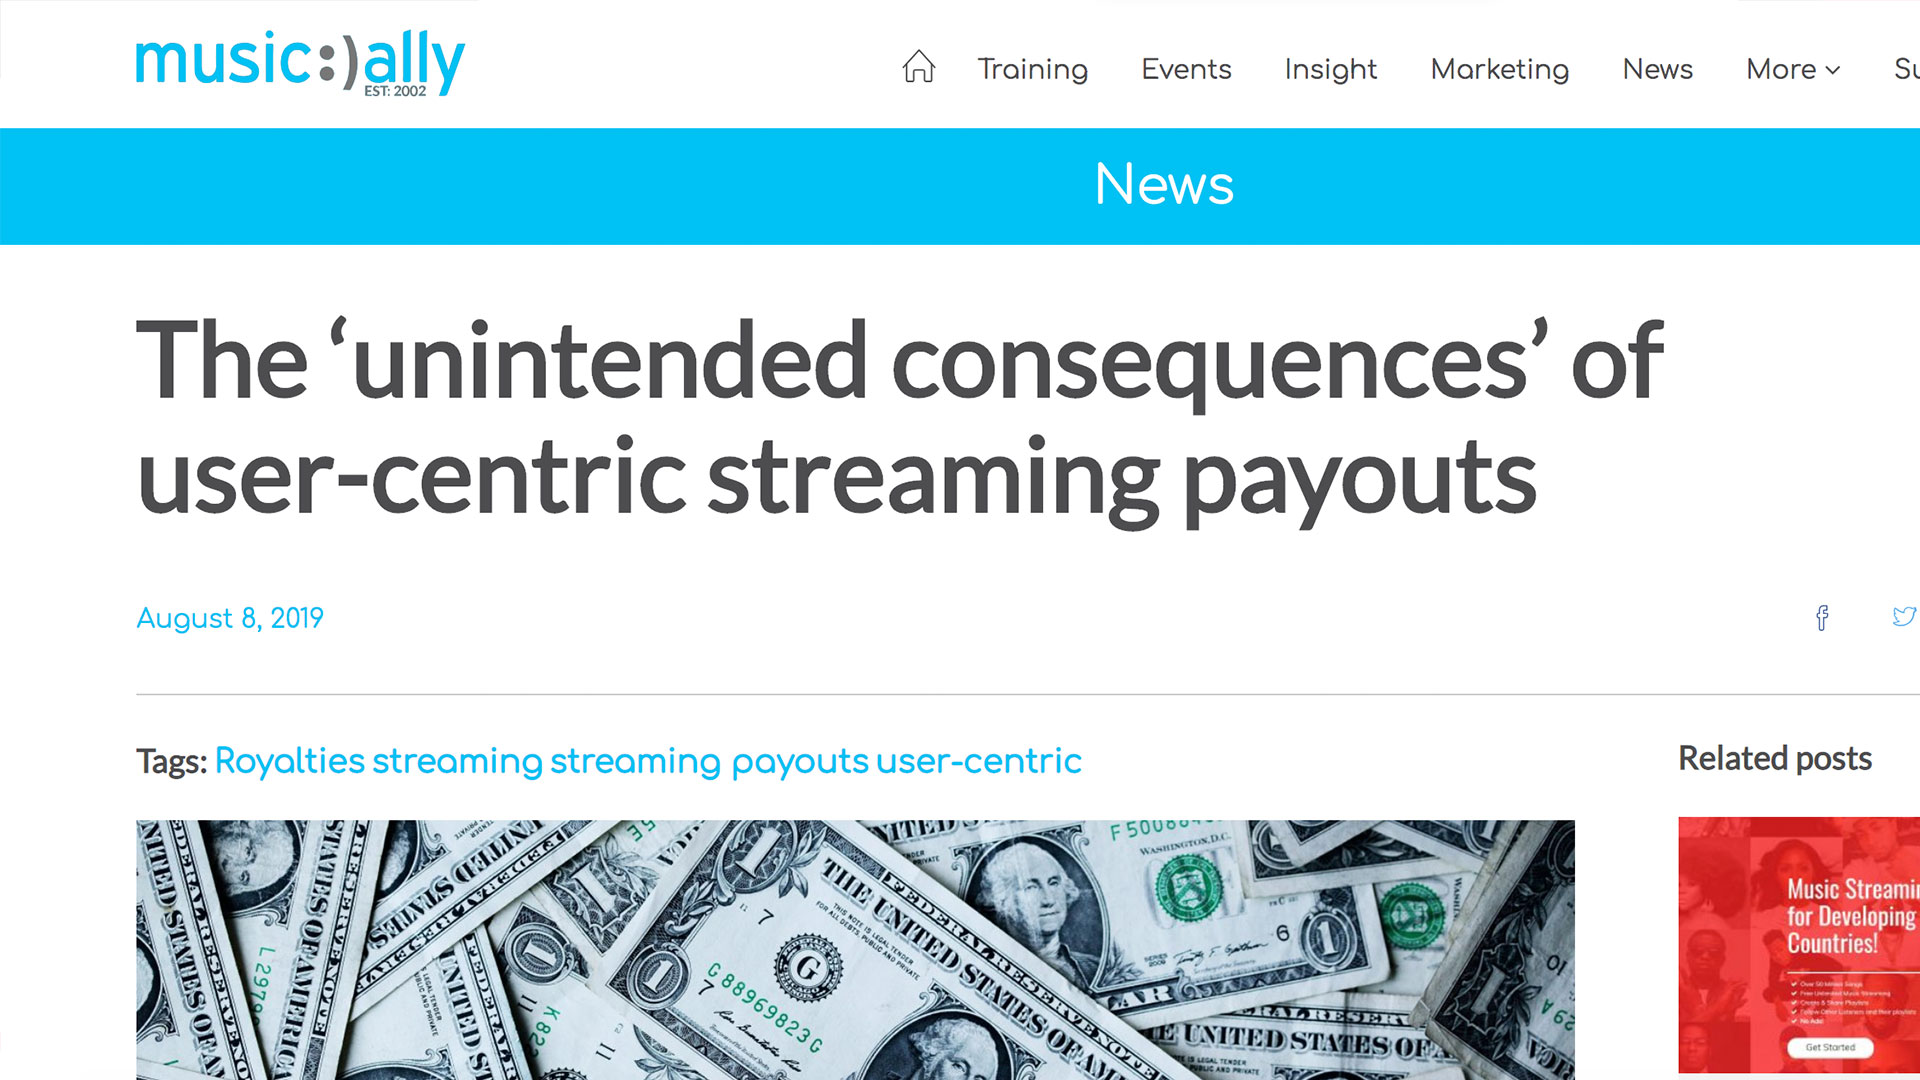 Fairness Rocks News The 'unintended consequences' of user-centric streaming payouts